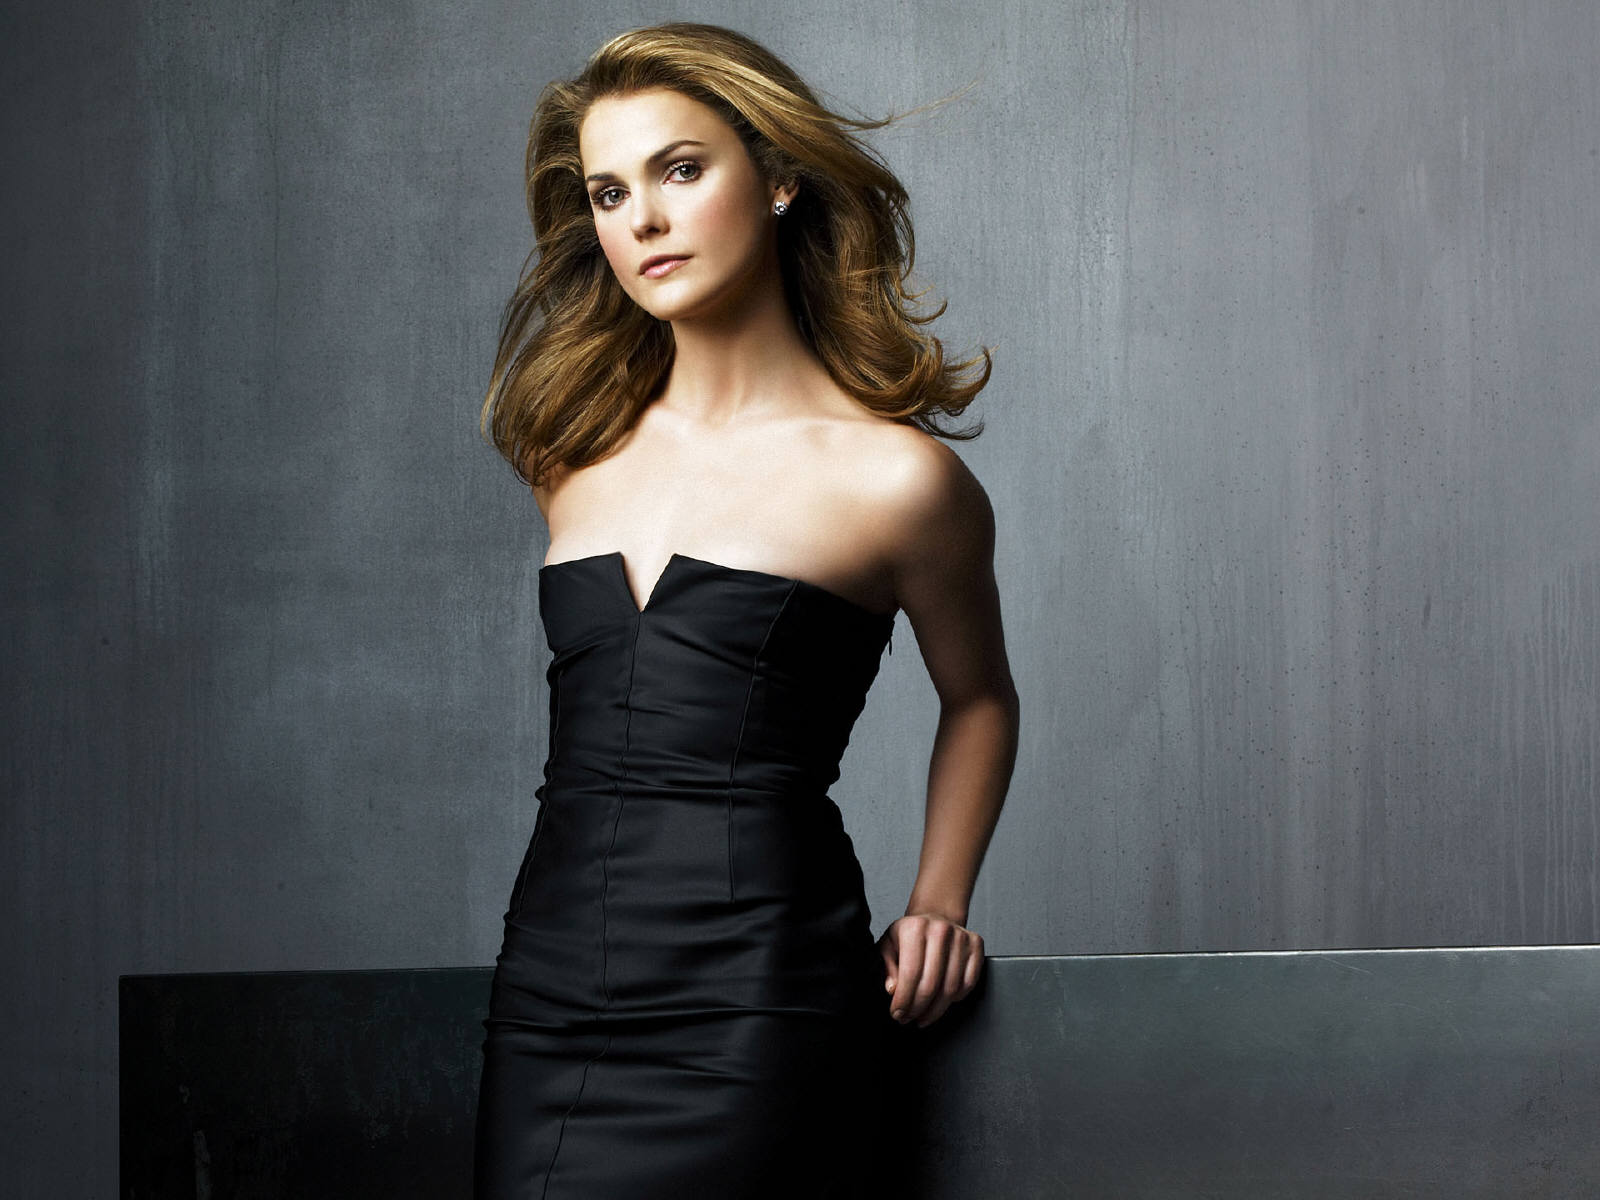 Wallpaper Information: Keri Russell 33547